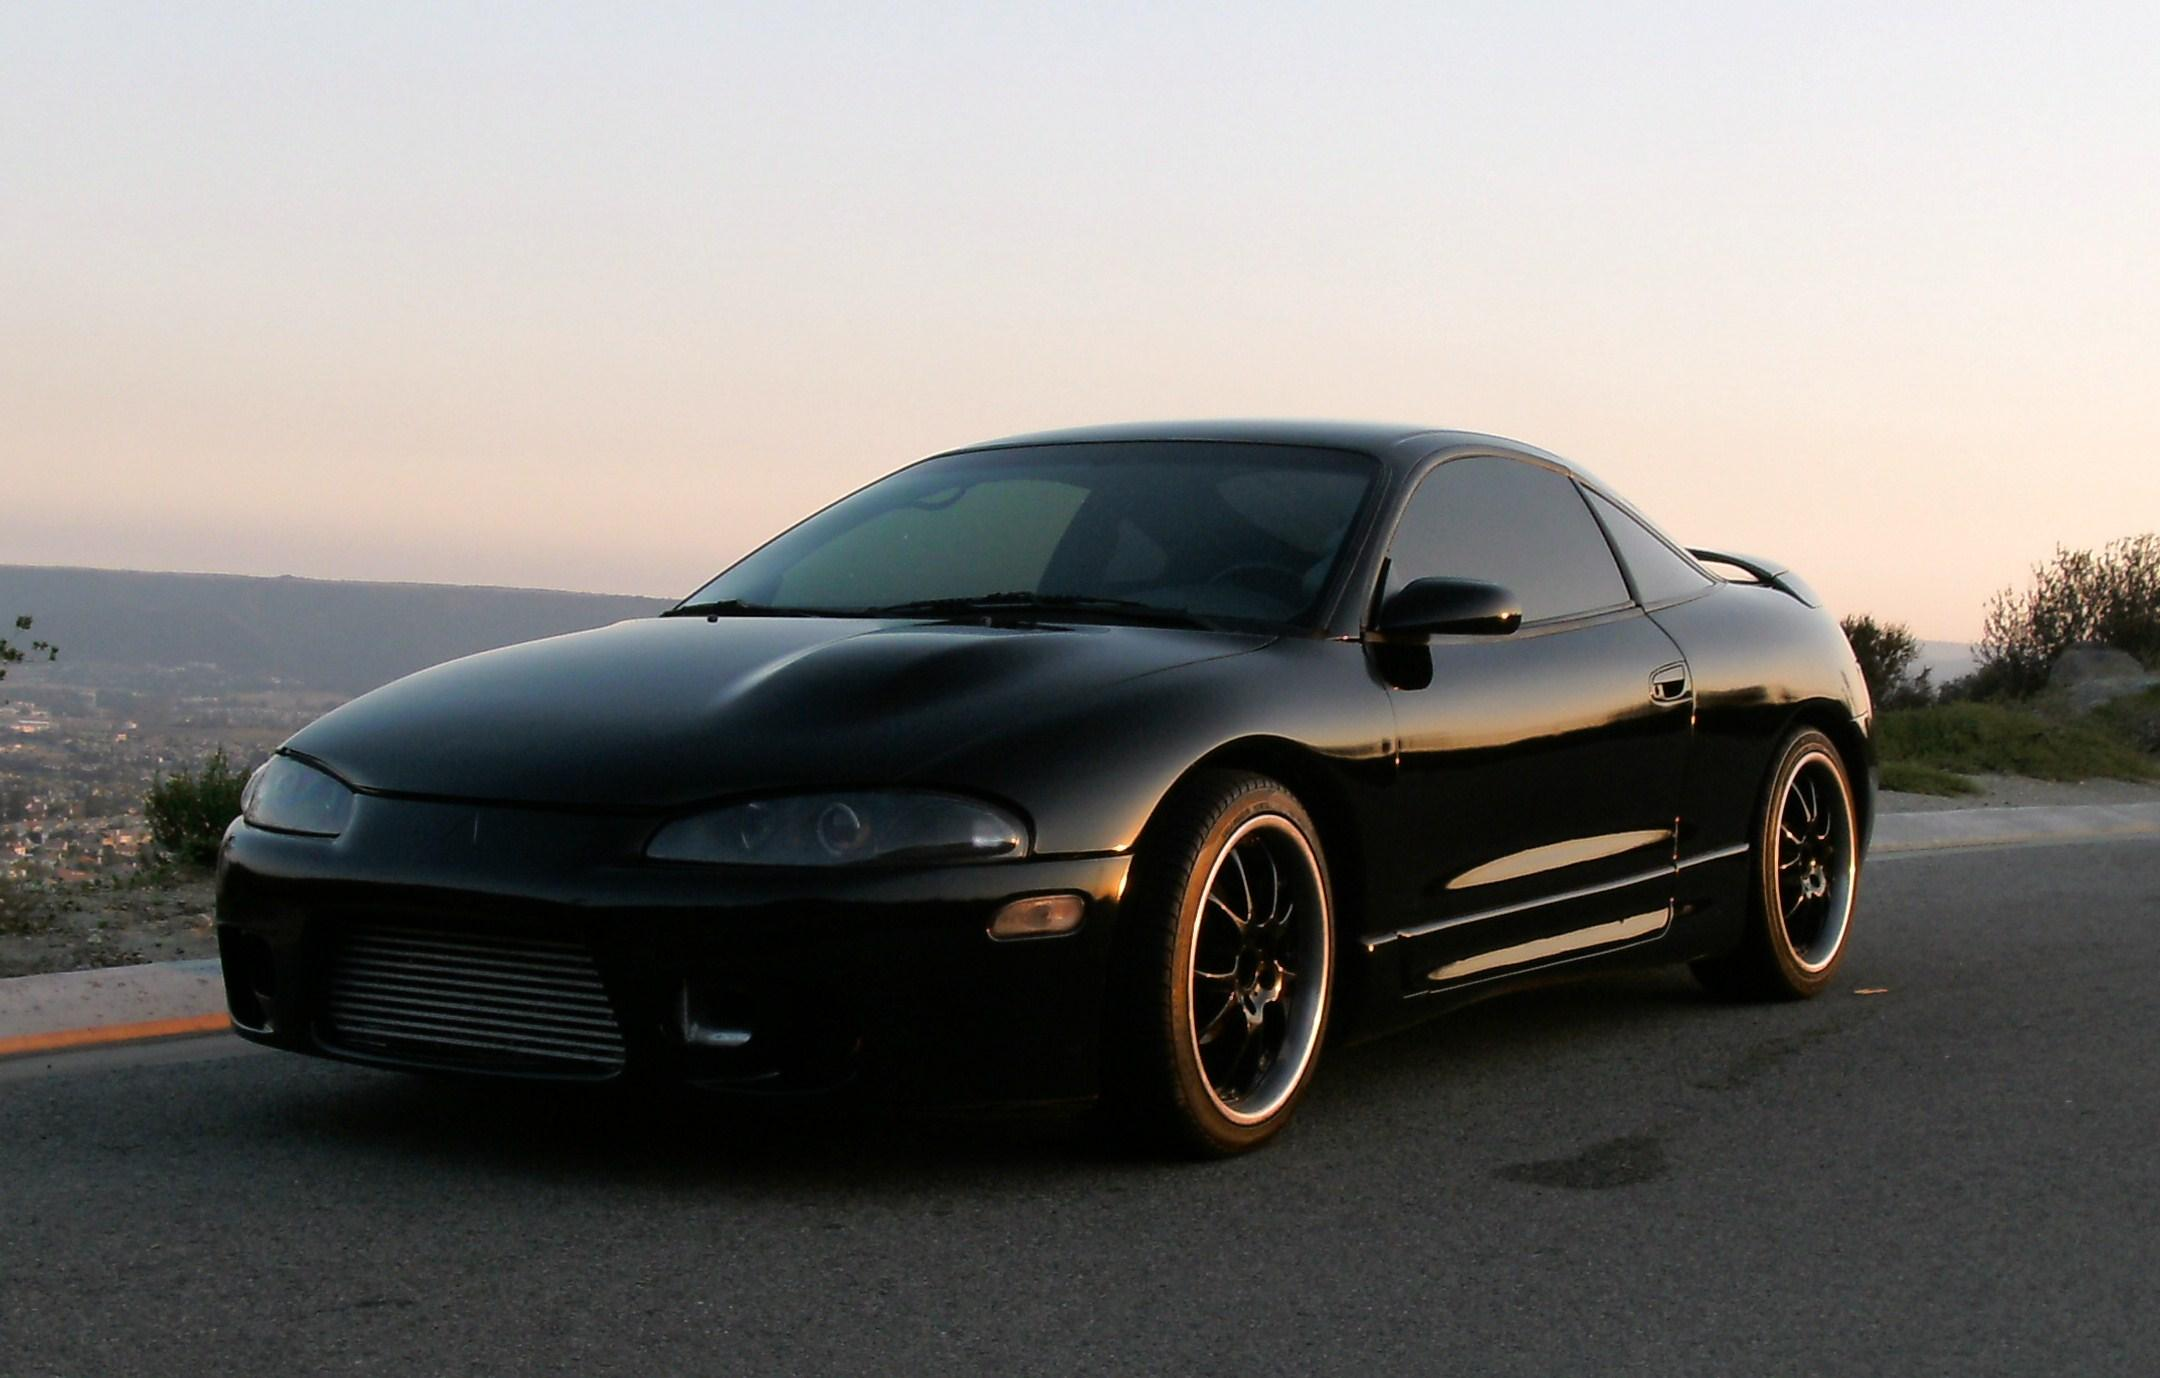 nickp636 39 s 1995 mitsubishi eclipse gs t coupe 2d in menifee ca. Black Bedroom Furniture Sets. Home Design Ideas